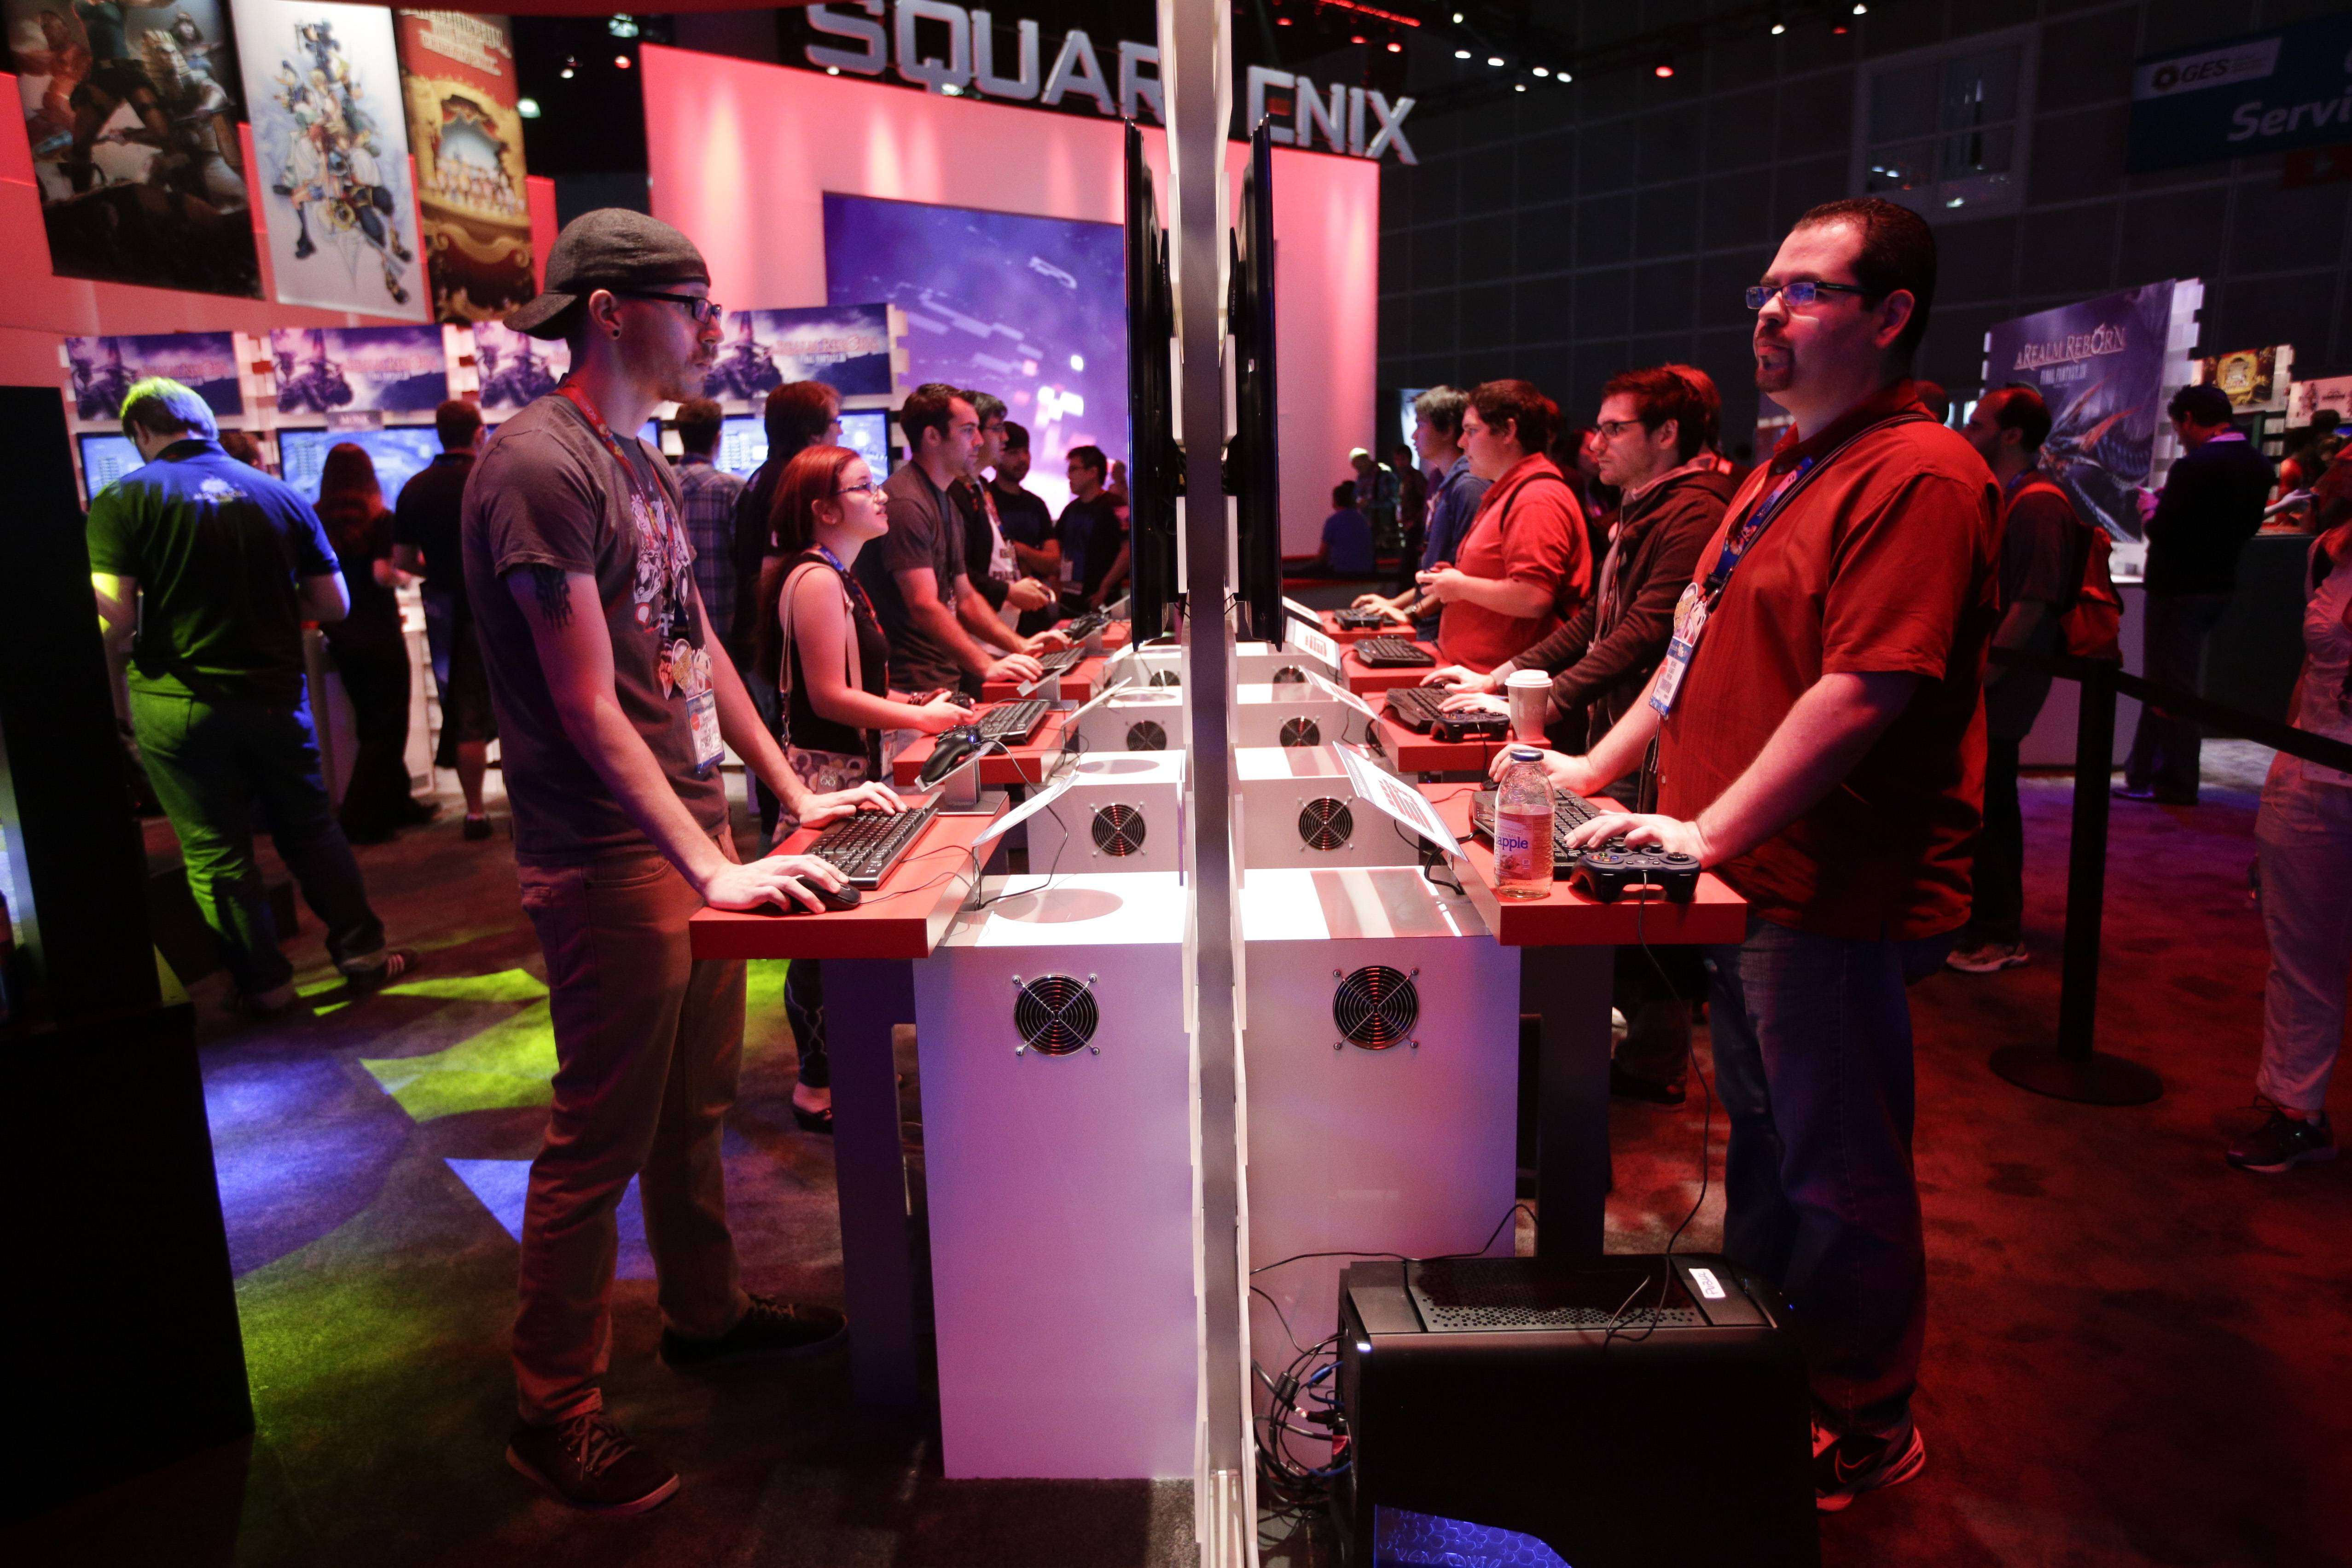 People play a video game Thursday at the Square Enix booth at the Electronic Entertainment Expo in Los Angeles.